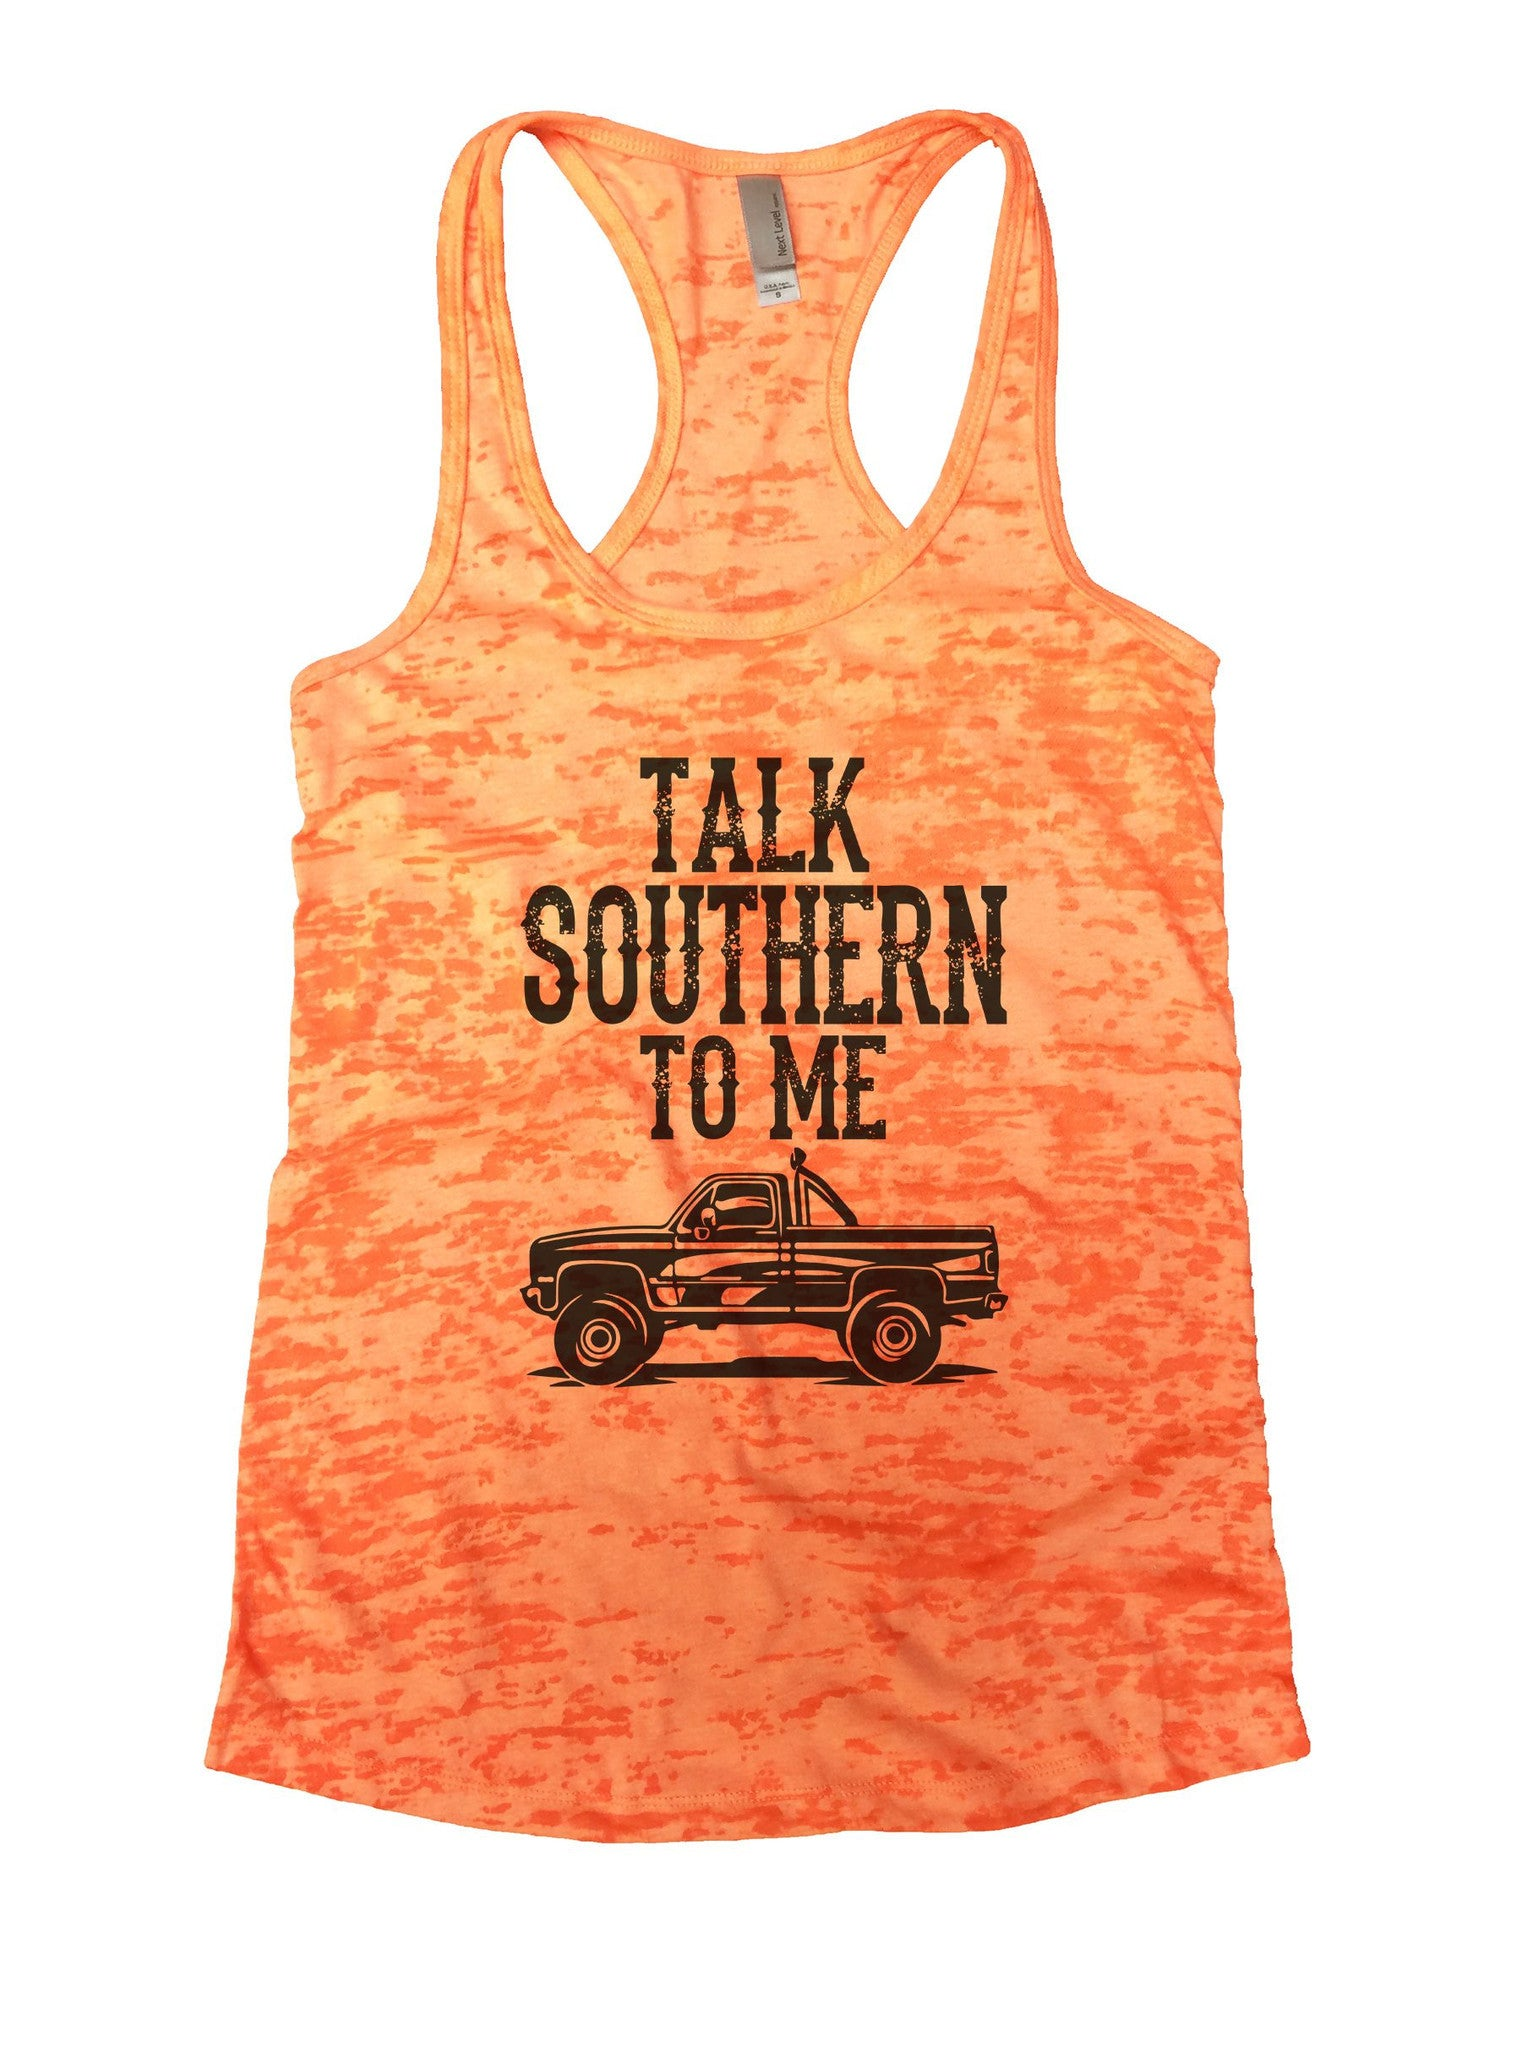 Talk Southern To Me Burnout Tank Top By BurnoutTankTops.com - 1010 - Funny Shirts Tank Tops Burnouts and Triblends  - 3